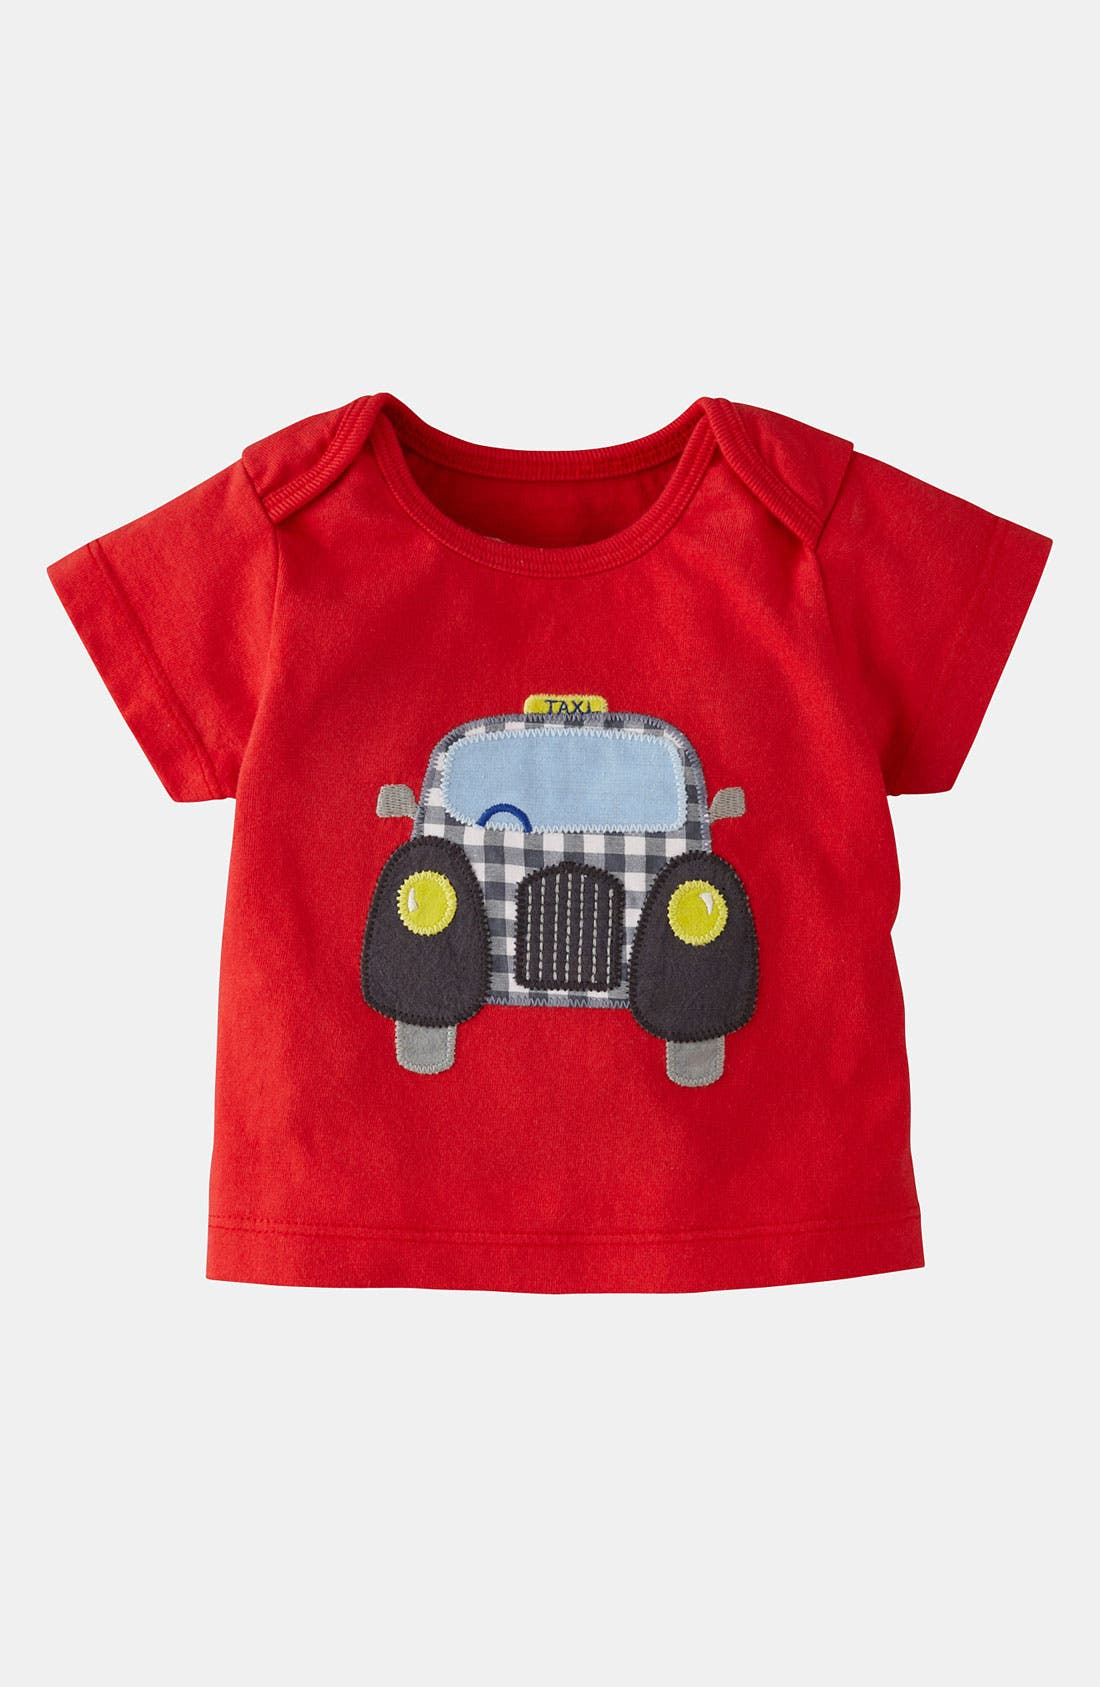 Main Image - Mini Boden 'Vehicle Appliqué' T-Shirt (Baby)